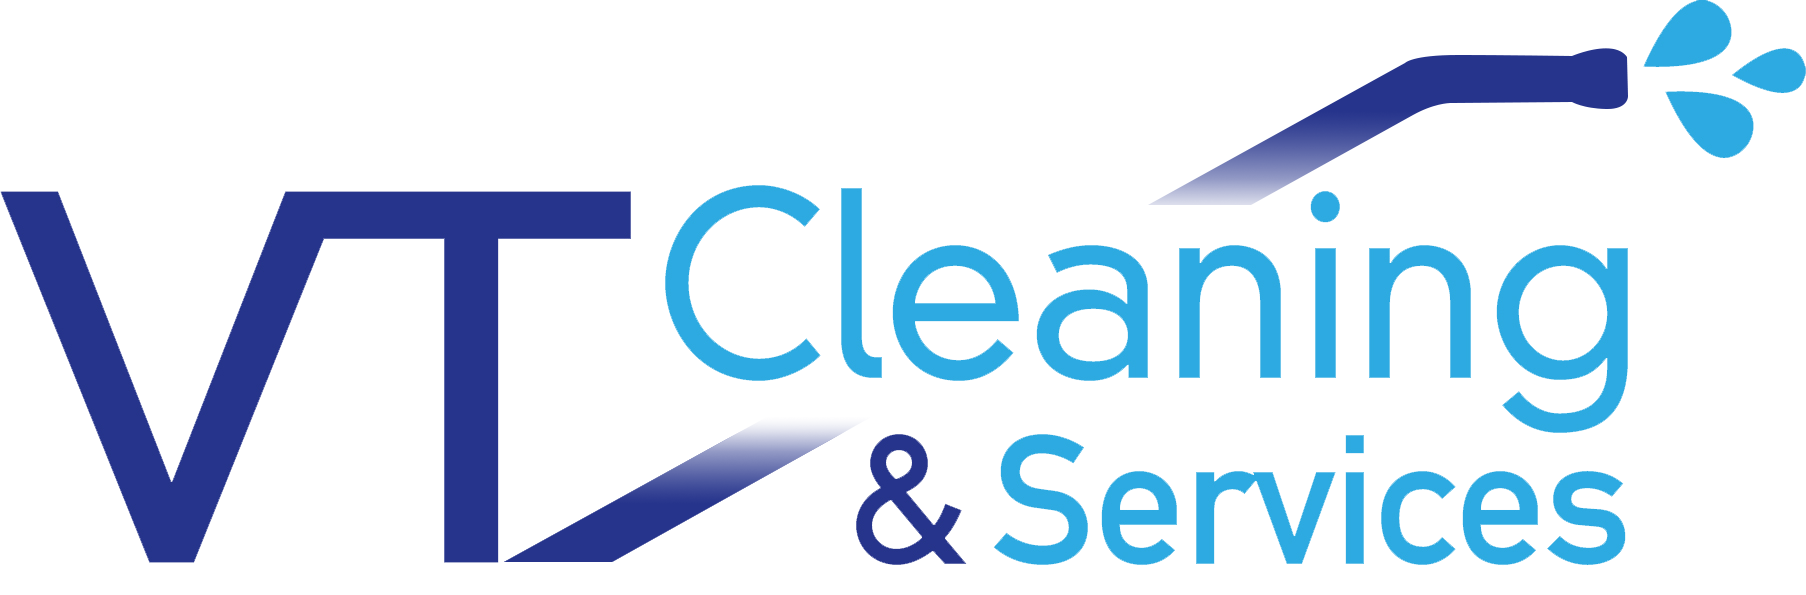 VTCleaning & Services